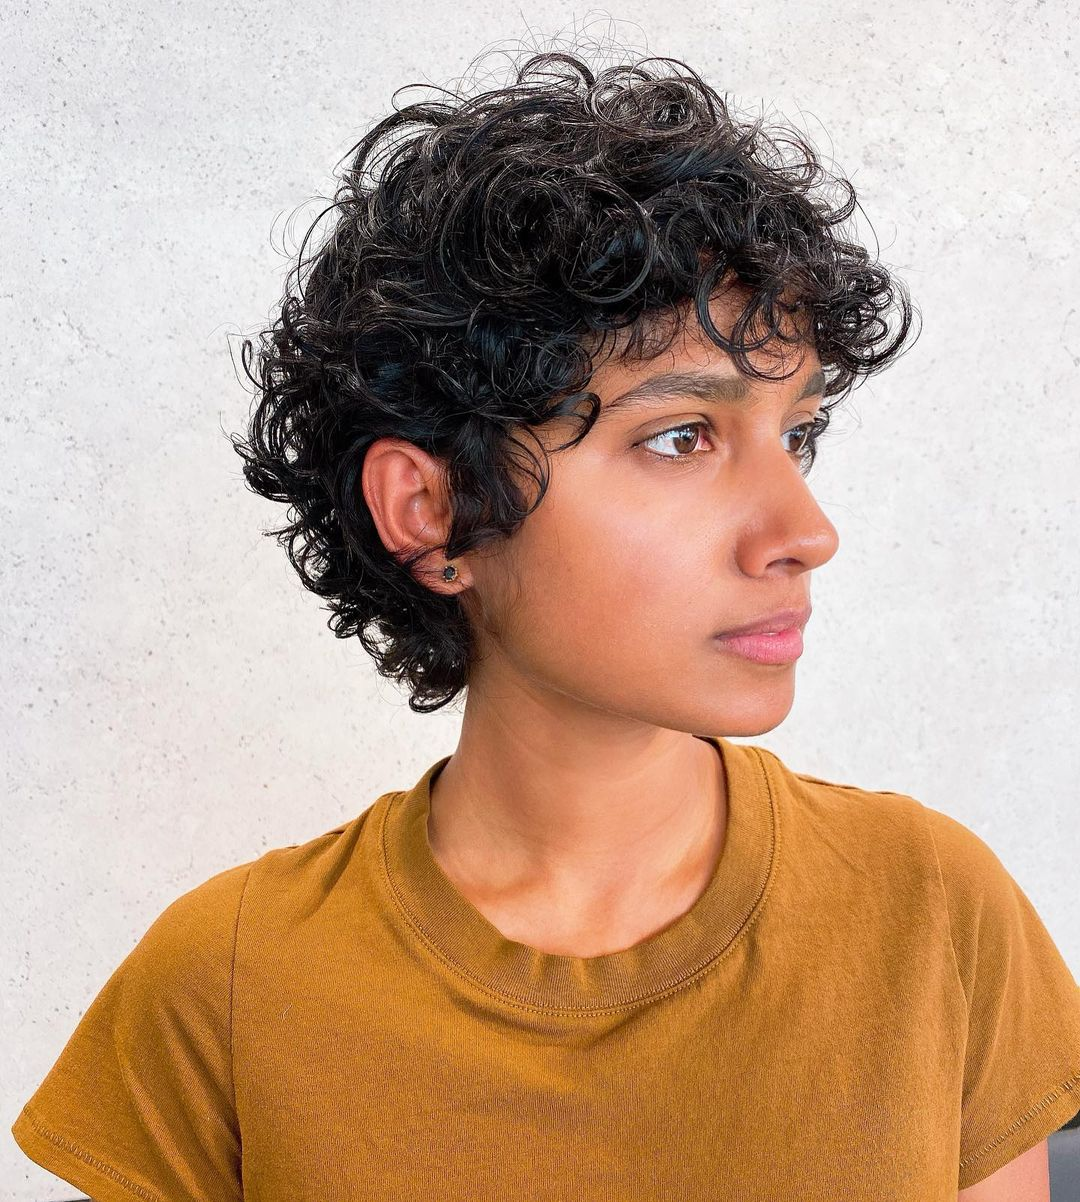 Curly Pixie Haircut with Bangs